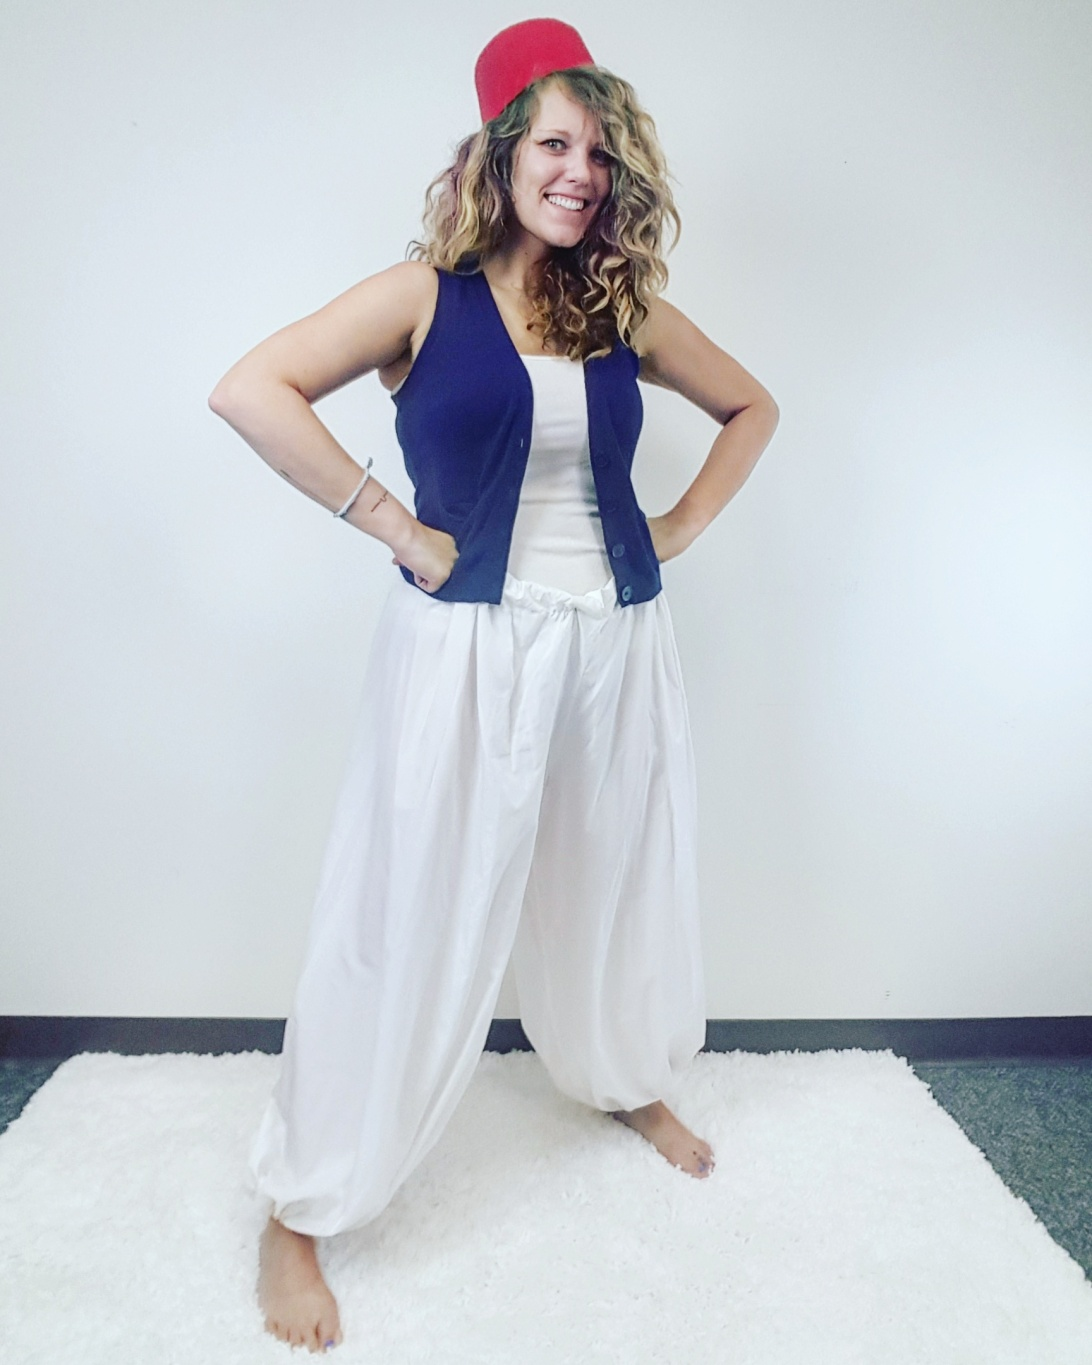 Thrift Store Cosplay Day 14 Aladdin Disney fashion blog post